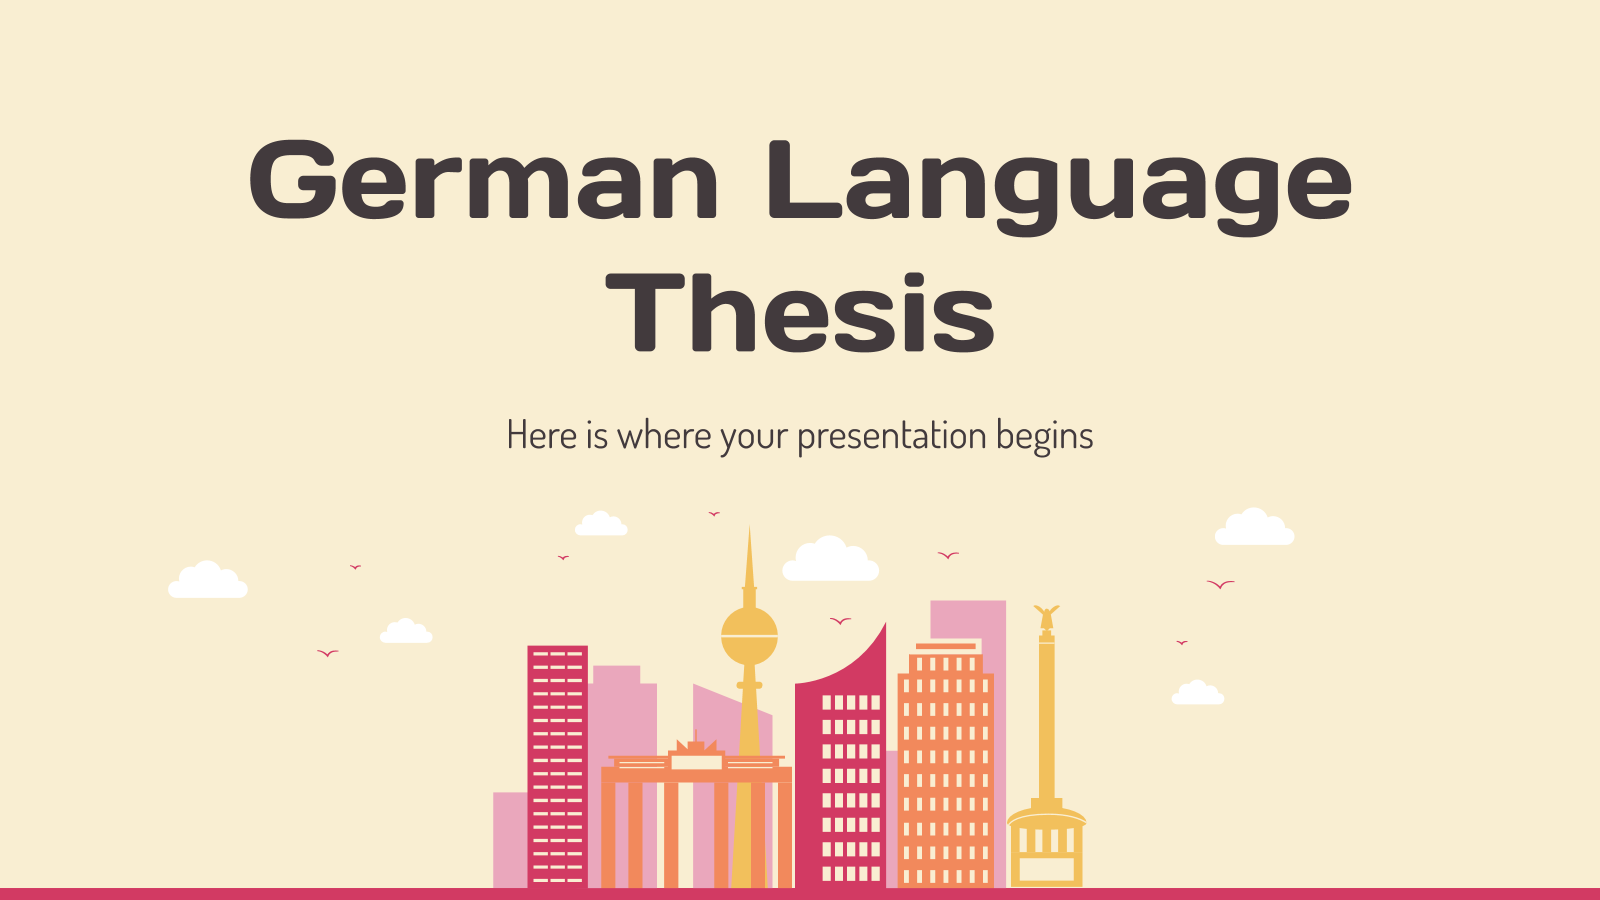 German Language Thesis presentation template